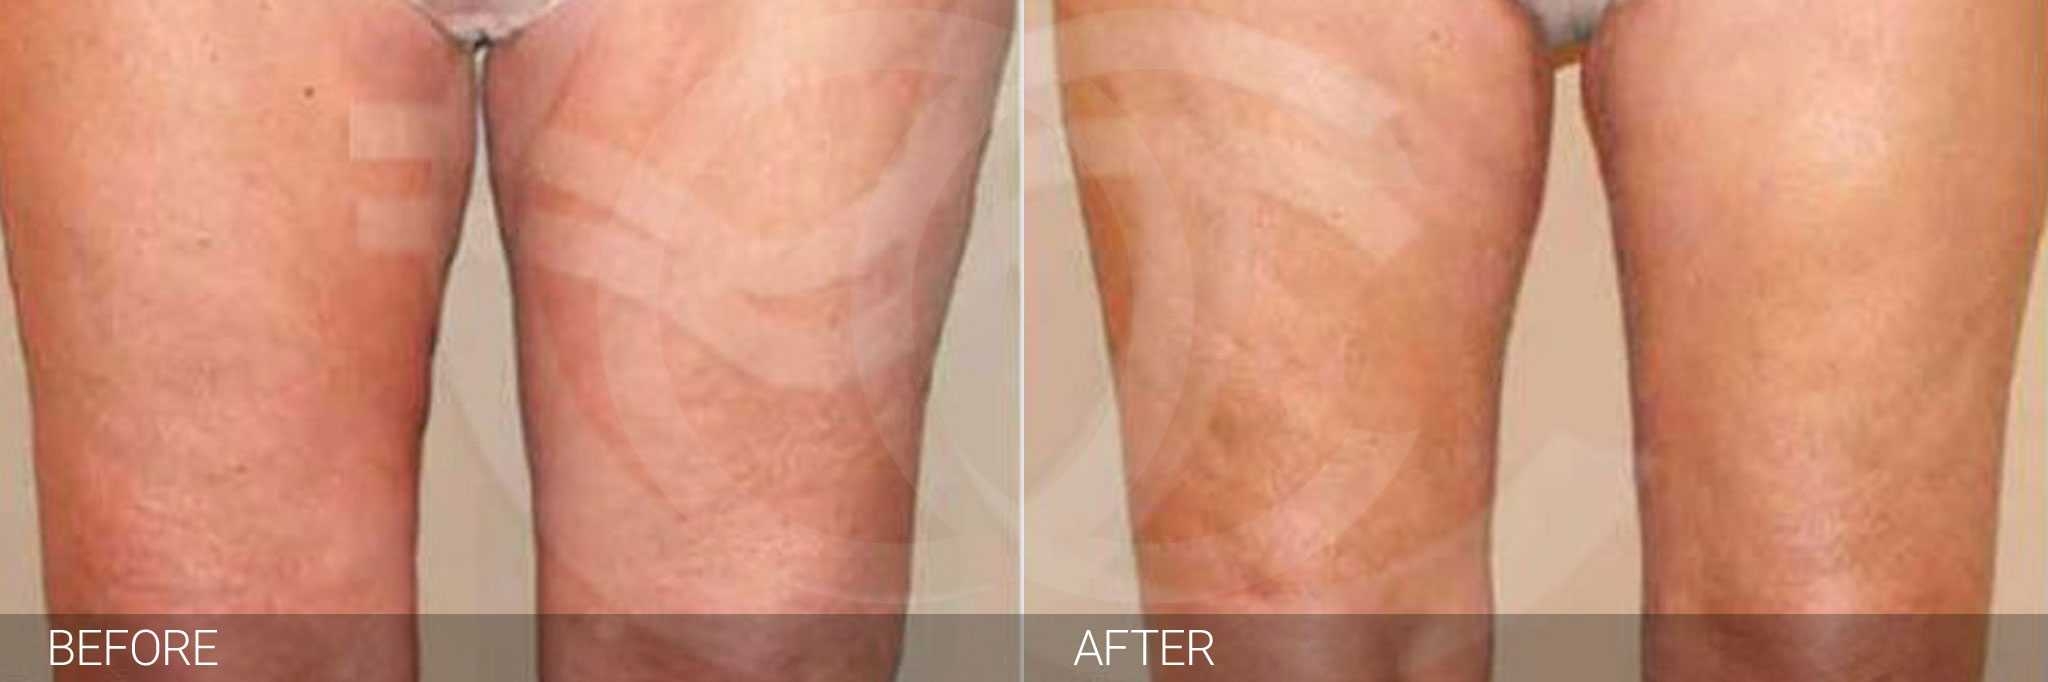 Thigh Lift and Liposculpture ante/post-op I